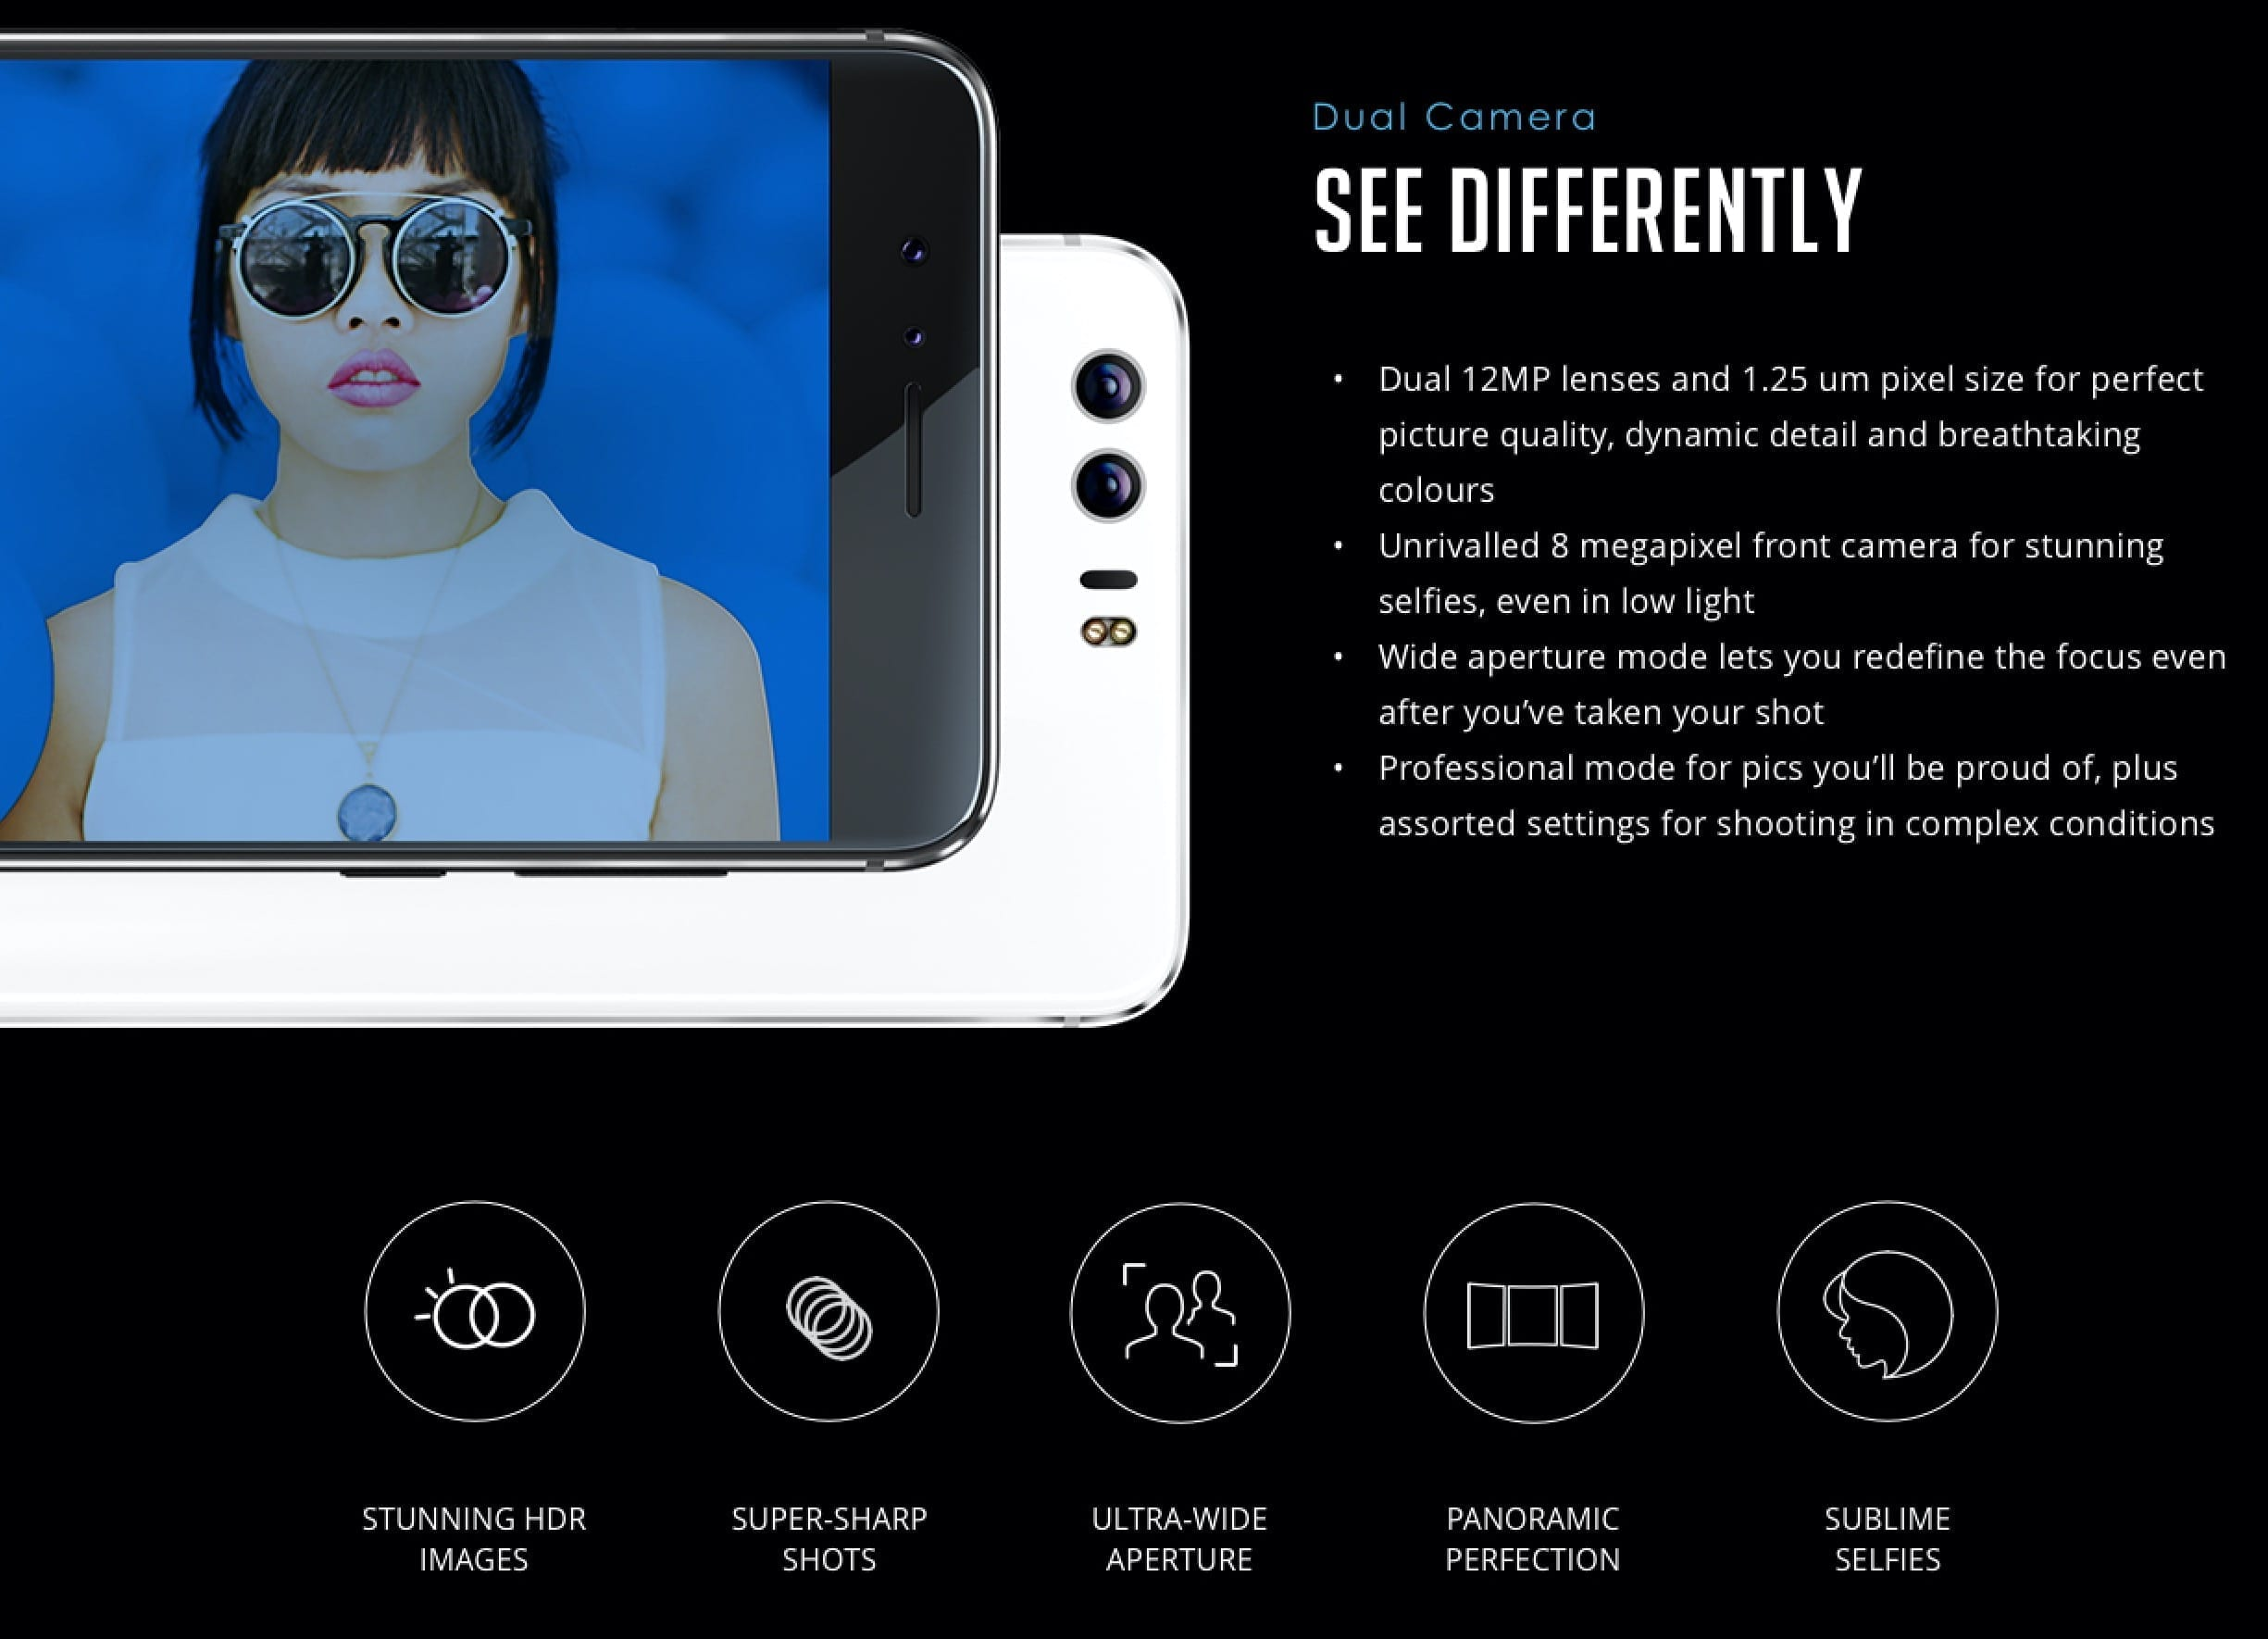 The Honor 8 camera explained